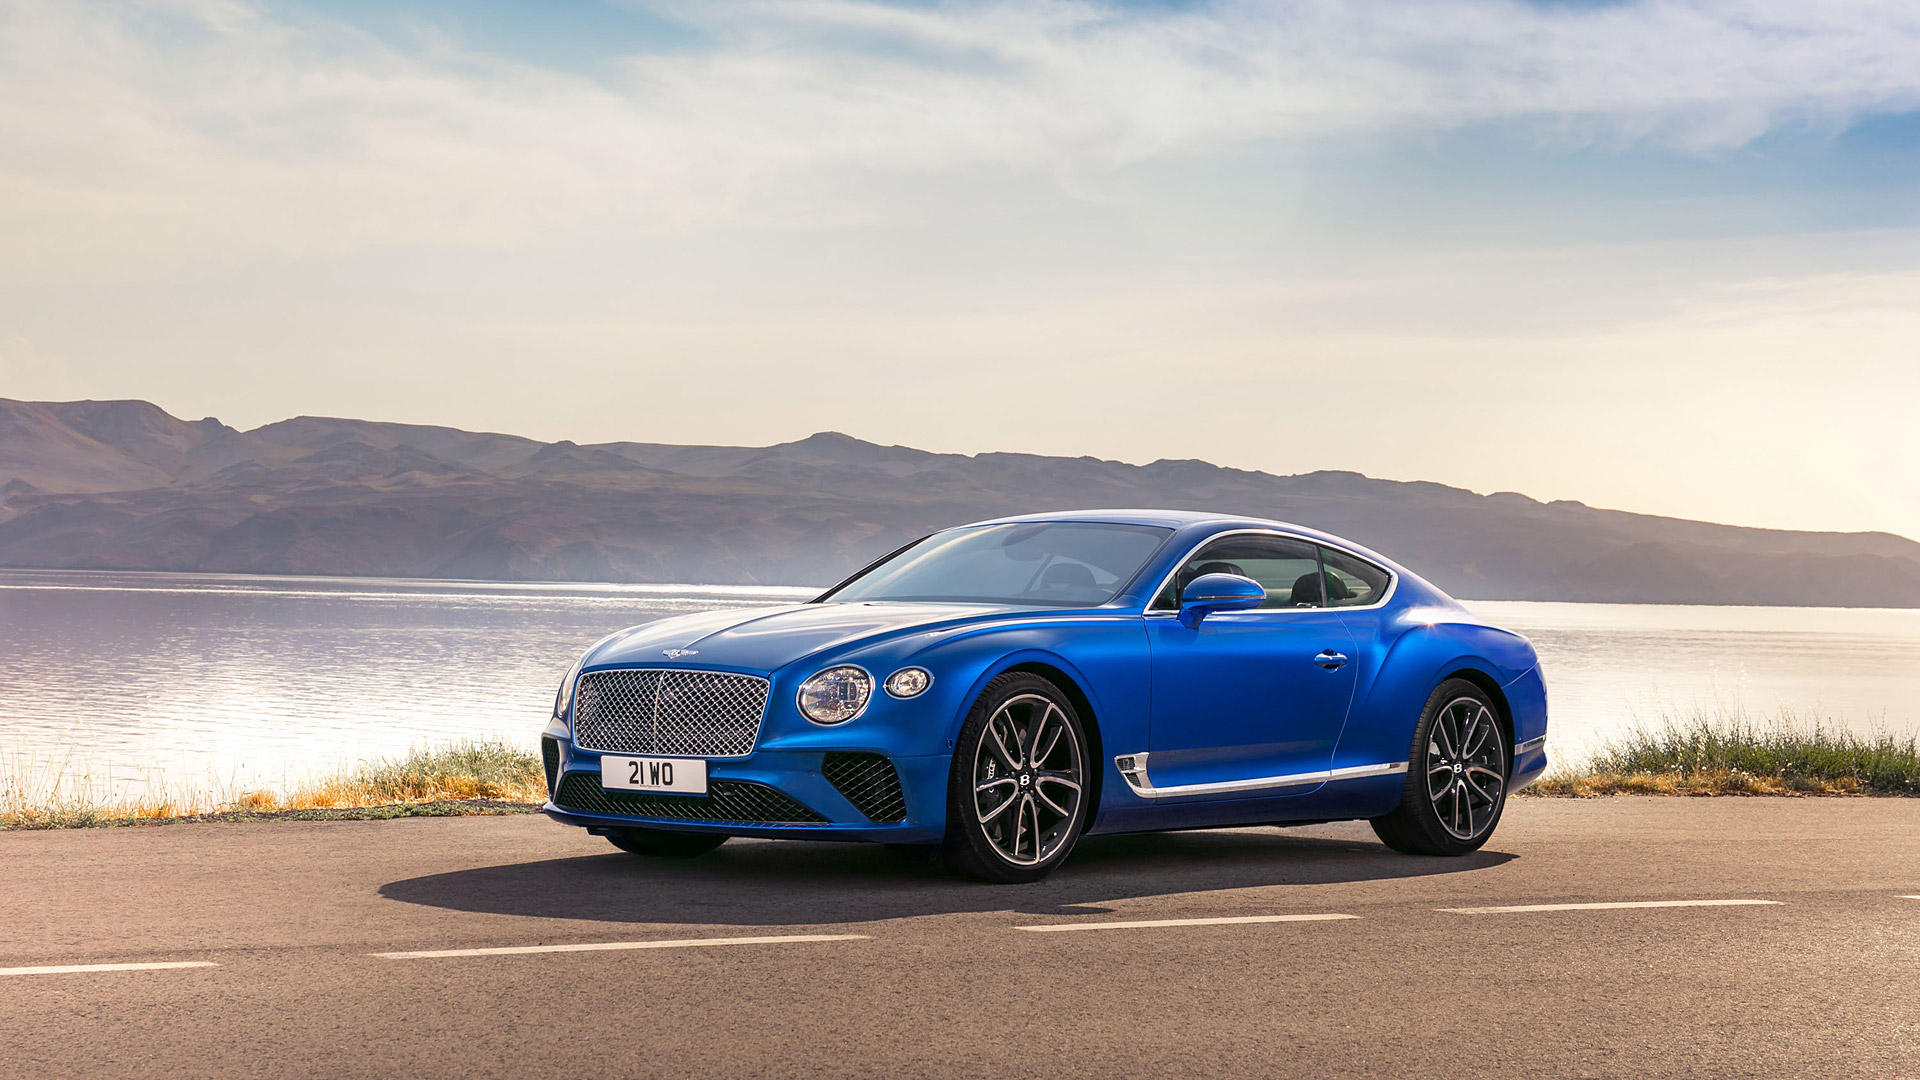 1920x1080 - Bentley Continental GT Wallpapers 2